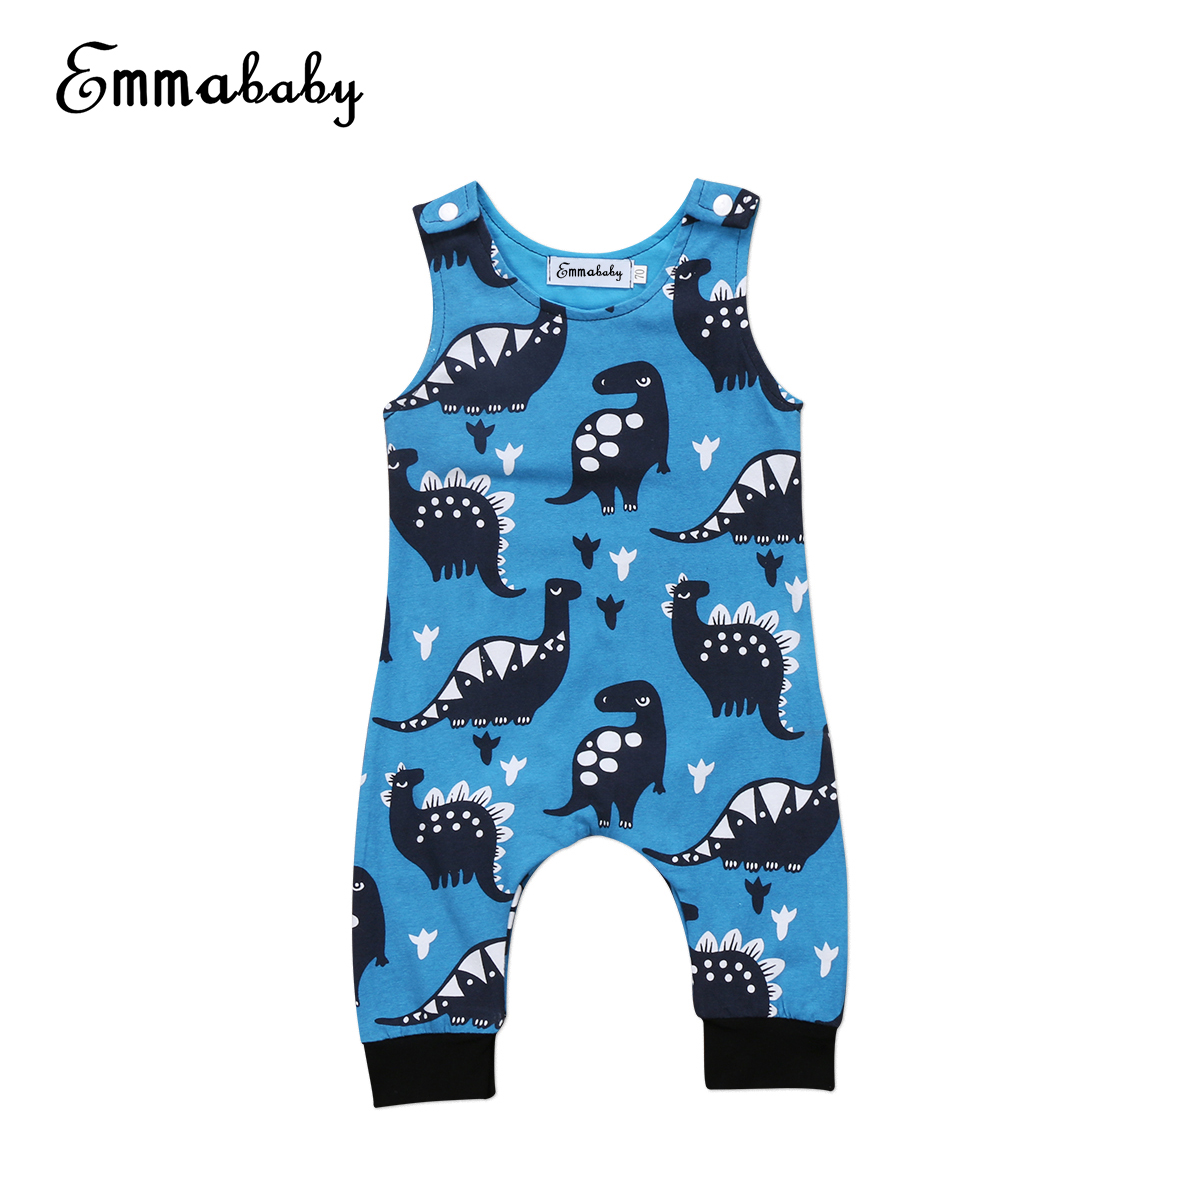 Emmababy Cartoon Dinosaur Baby Rompers 0-18M Newborn Baby Boys Clothes Sleeveless Cotton Jumpsuits Summer Sunsuits cotton baby rompers set newborn clothes baby clothing boys girls cartoon jumpsuits long sleeve overalls coveralls autumn winter